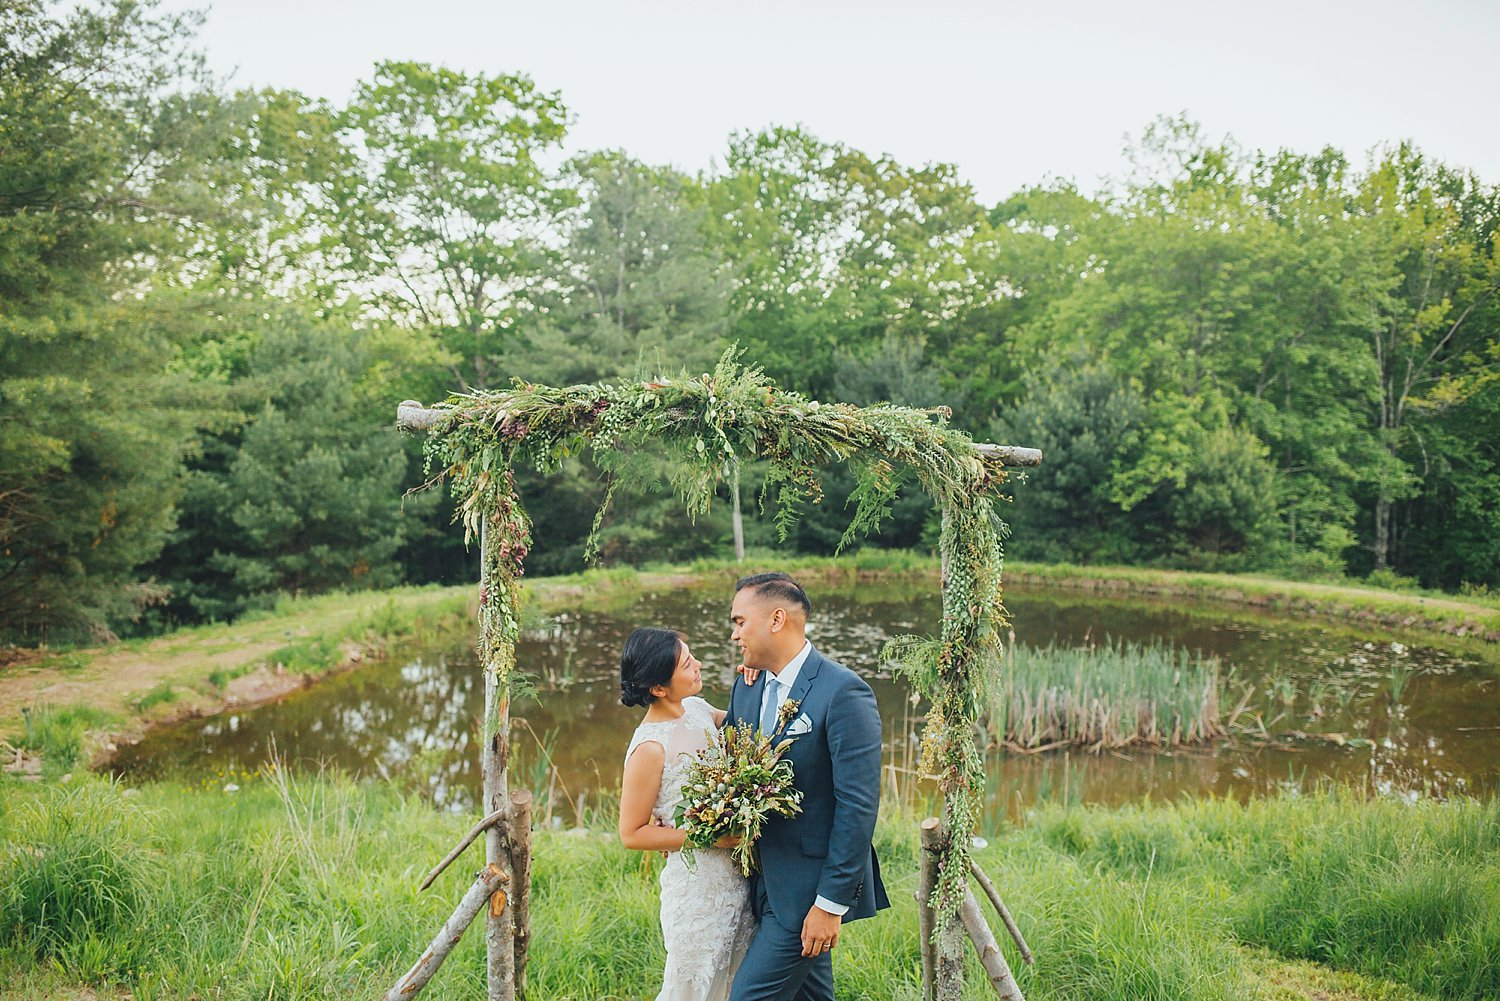 nyc-wedding-photography-nj-tri-state-cinematography-intothestory-by-moo-jae_0210.jpg